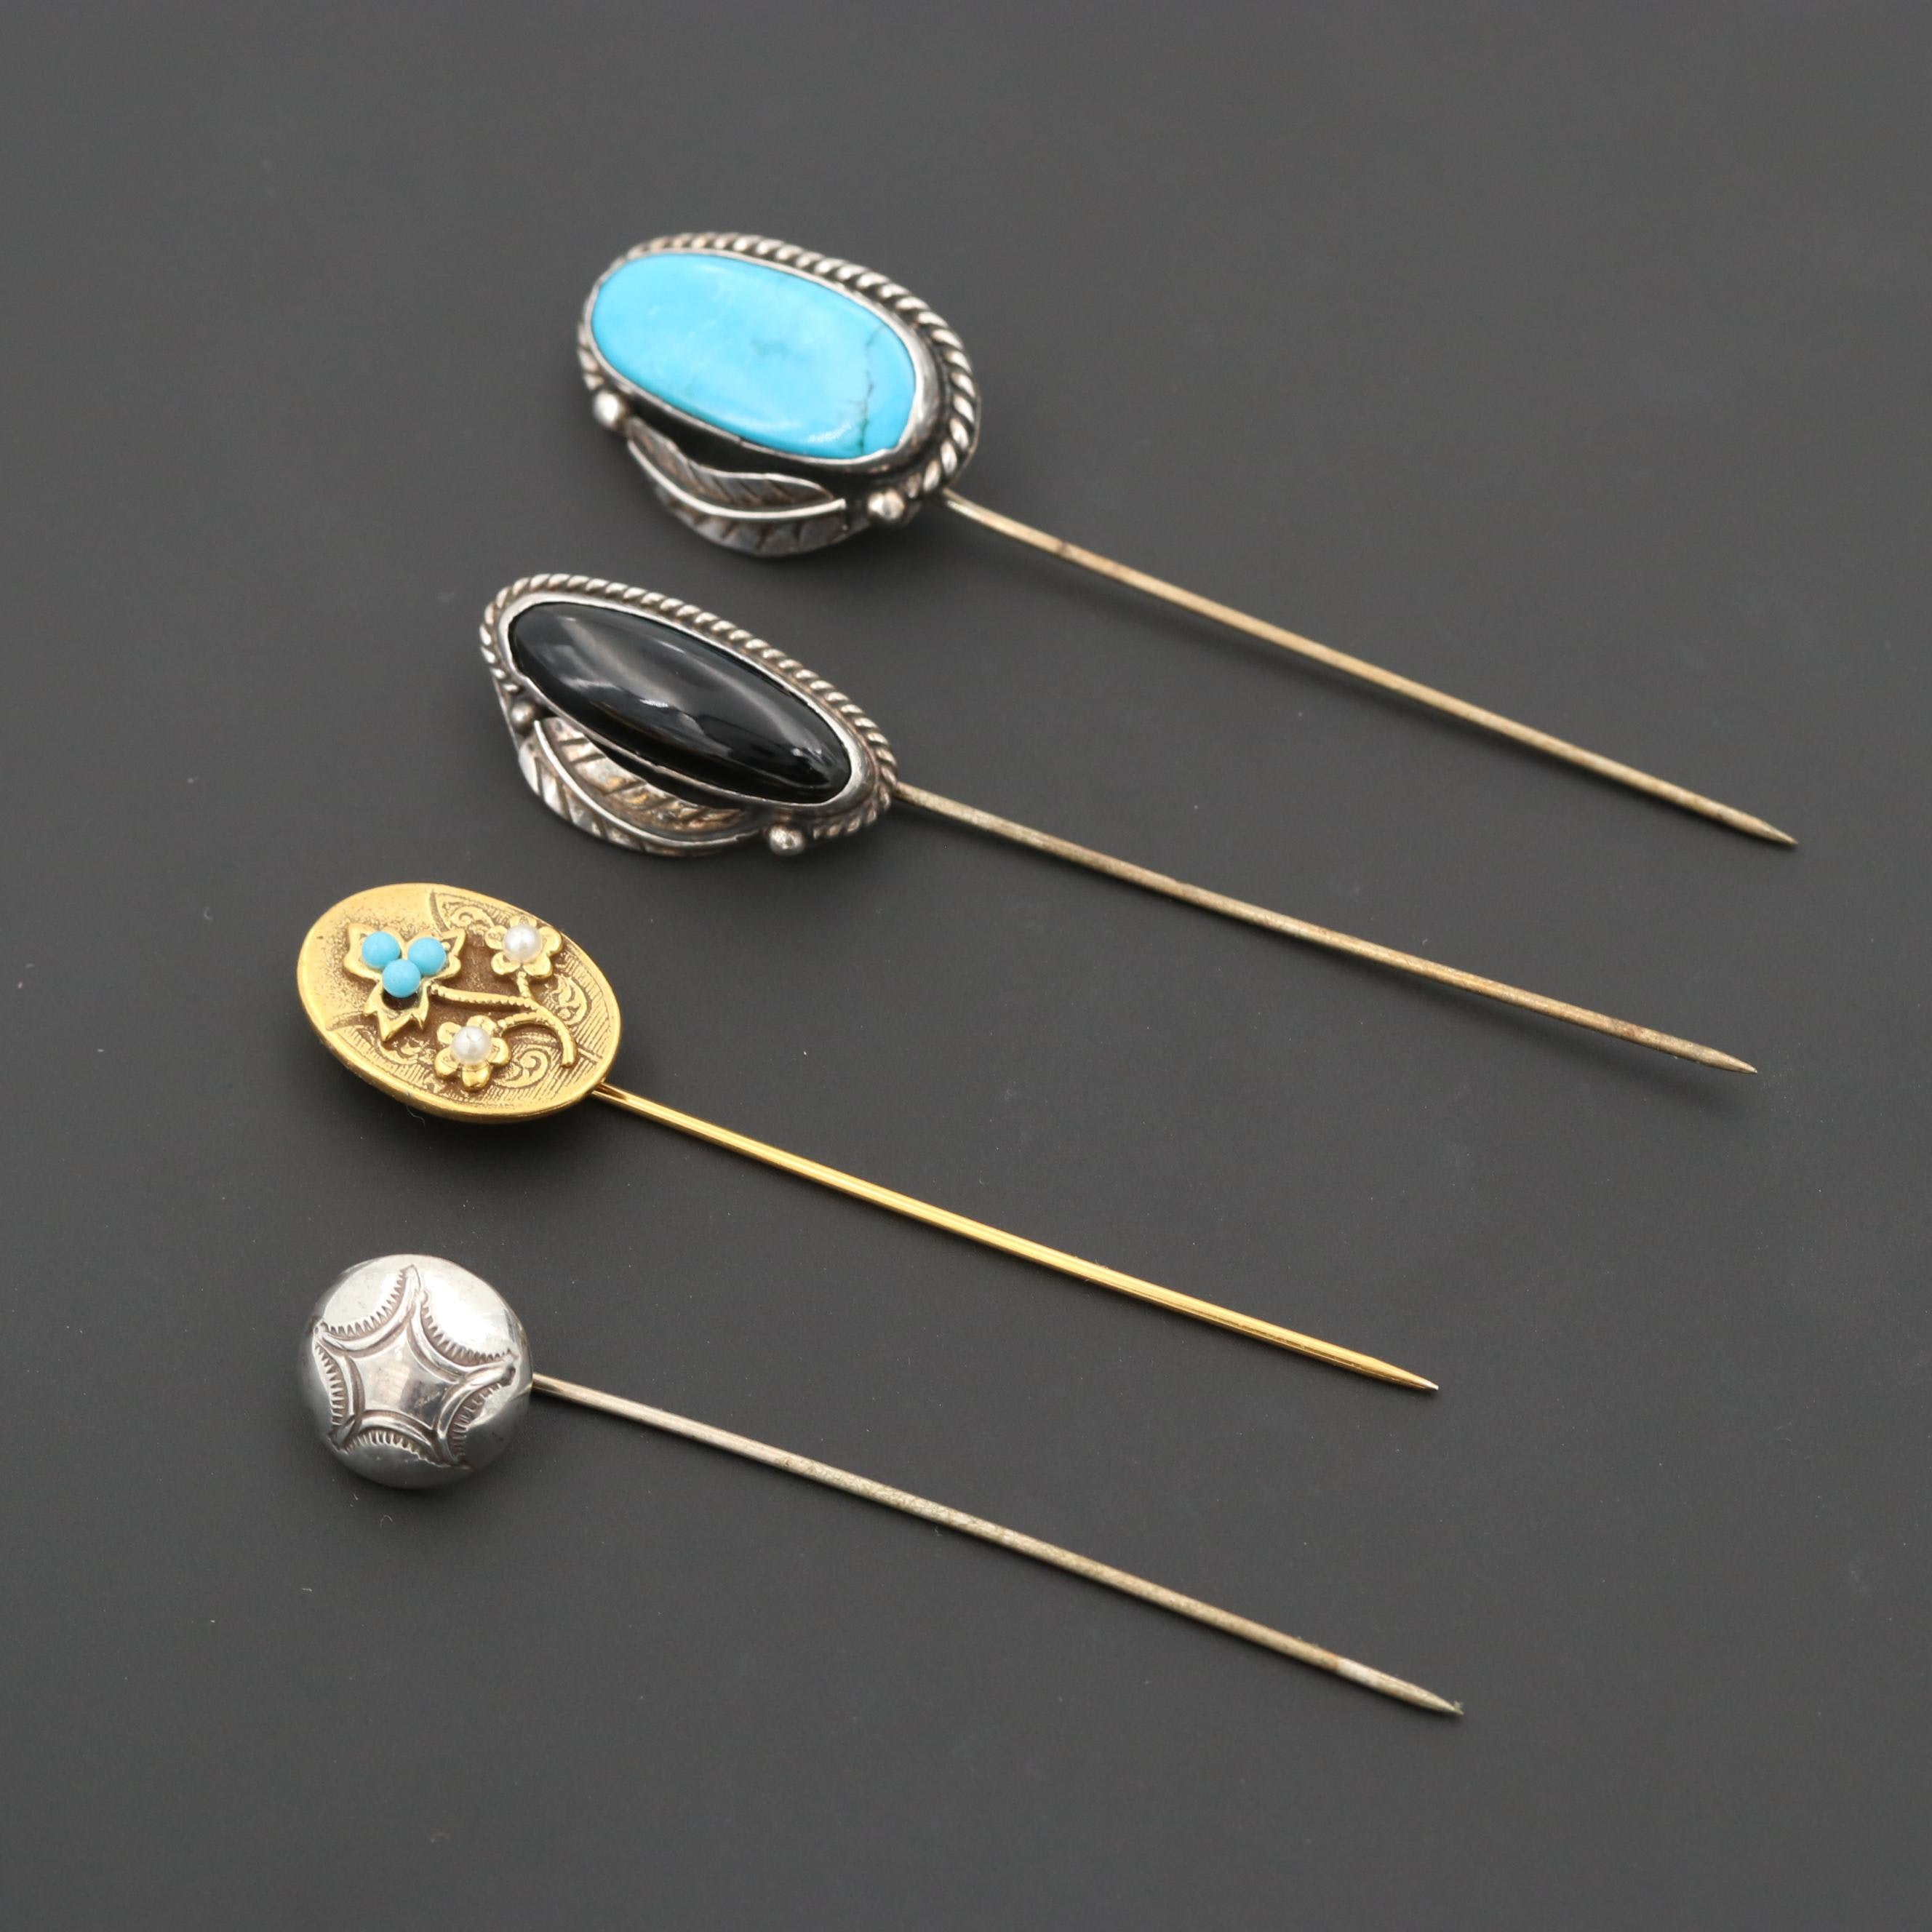 Sterling Silver and Silver Tone Stick Pins with Obsidian and Turquoise